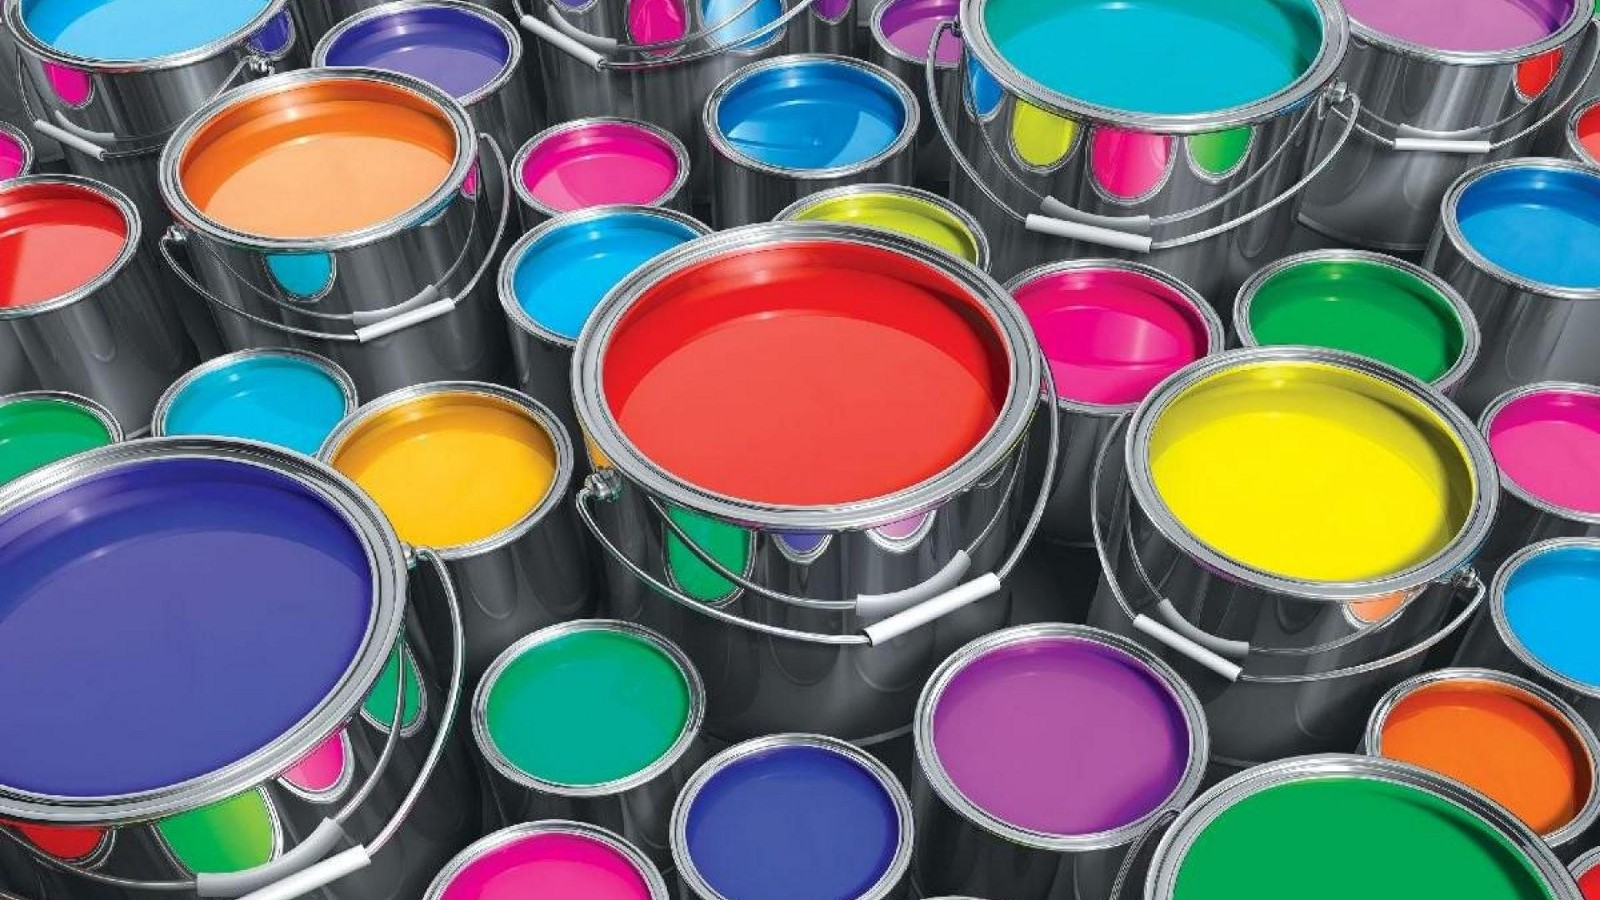 Future of Global Paints and Coatings Industry Analyzed by Top ...